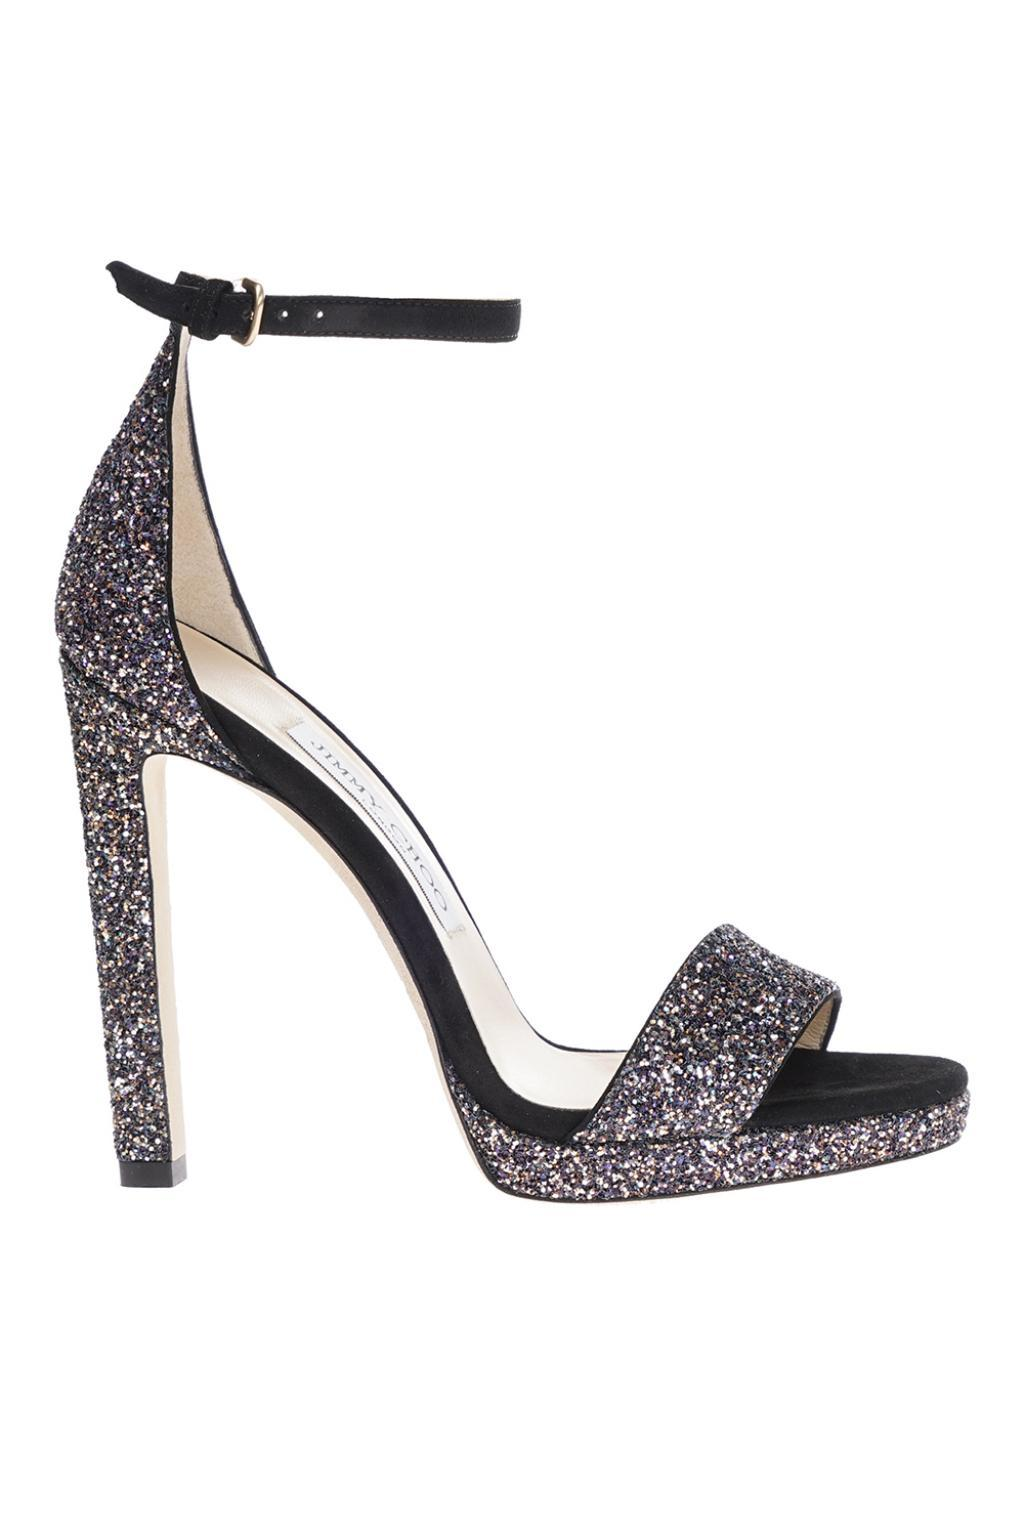 05c694314a5 Lyst - Jimmy Choo  misty 120  Stiletto Sandals in Black